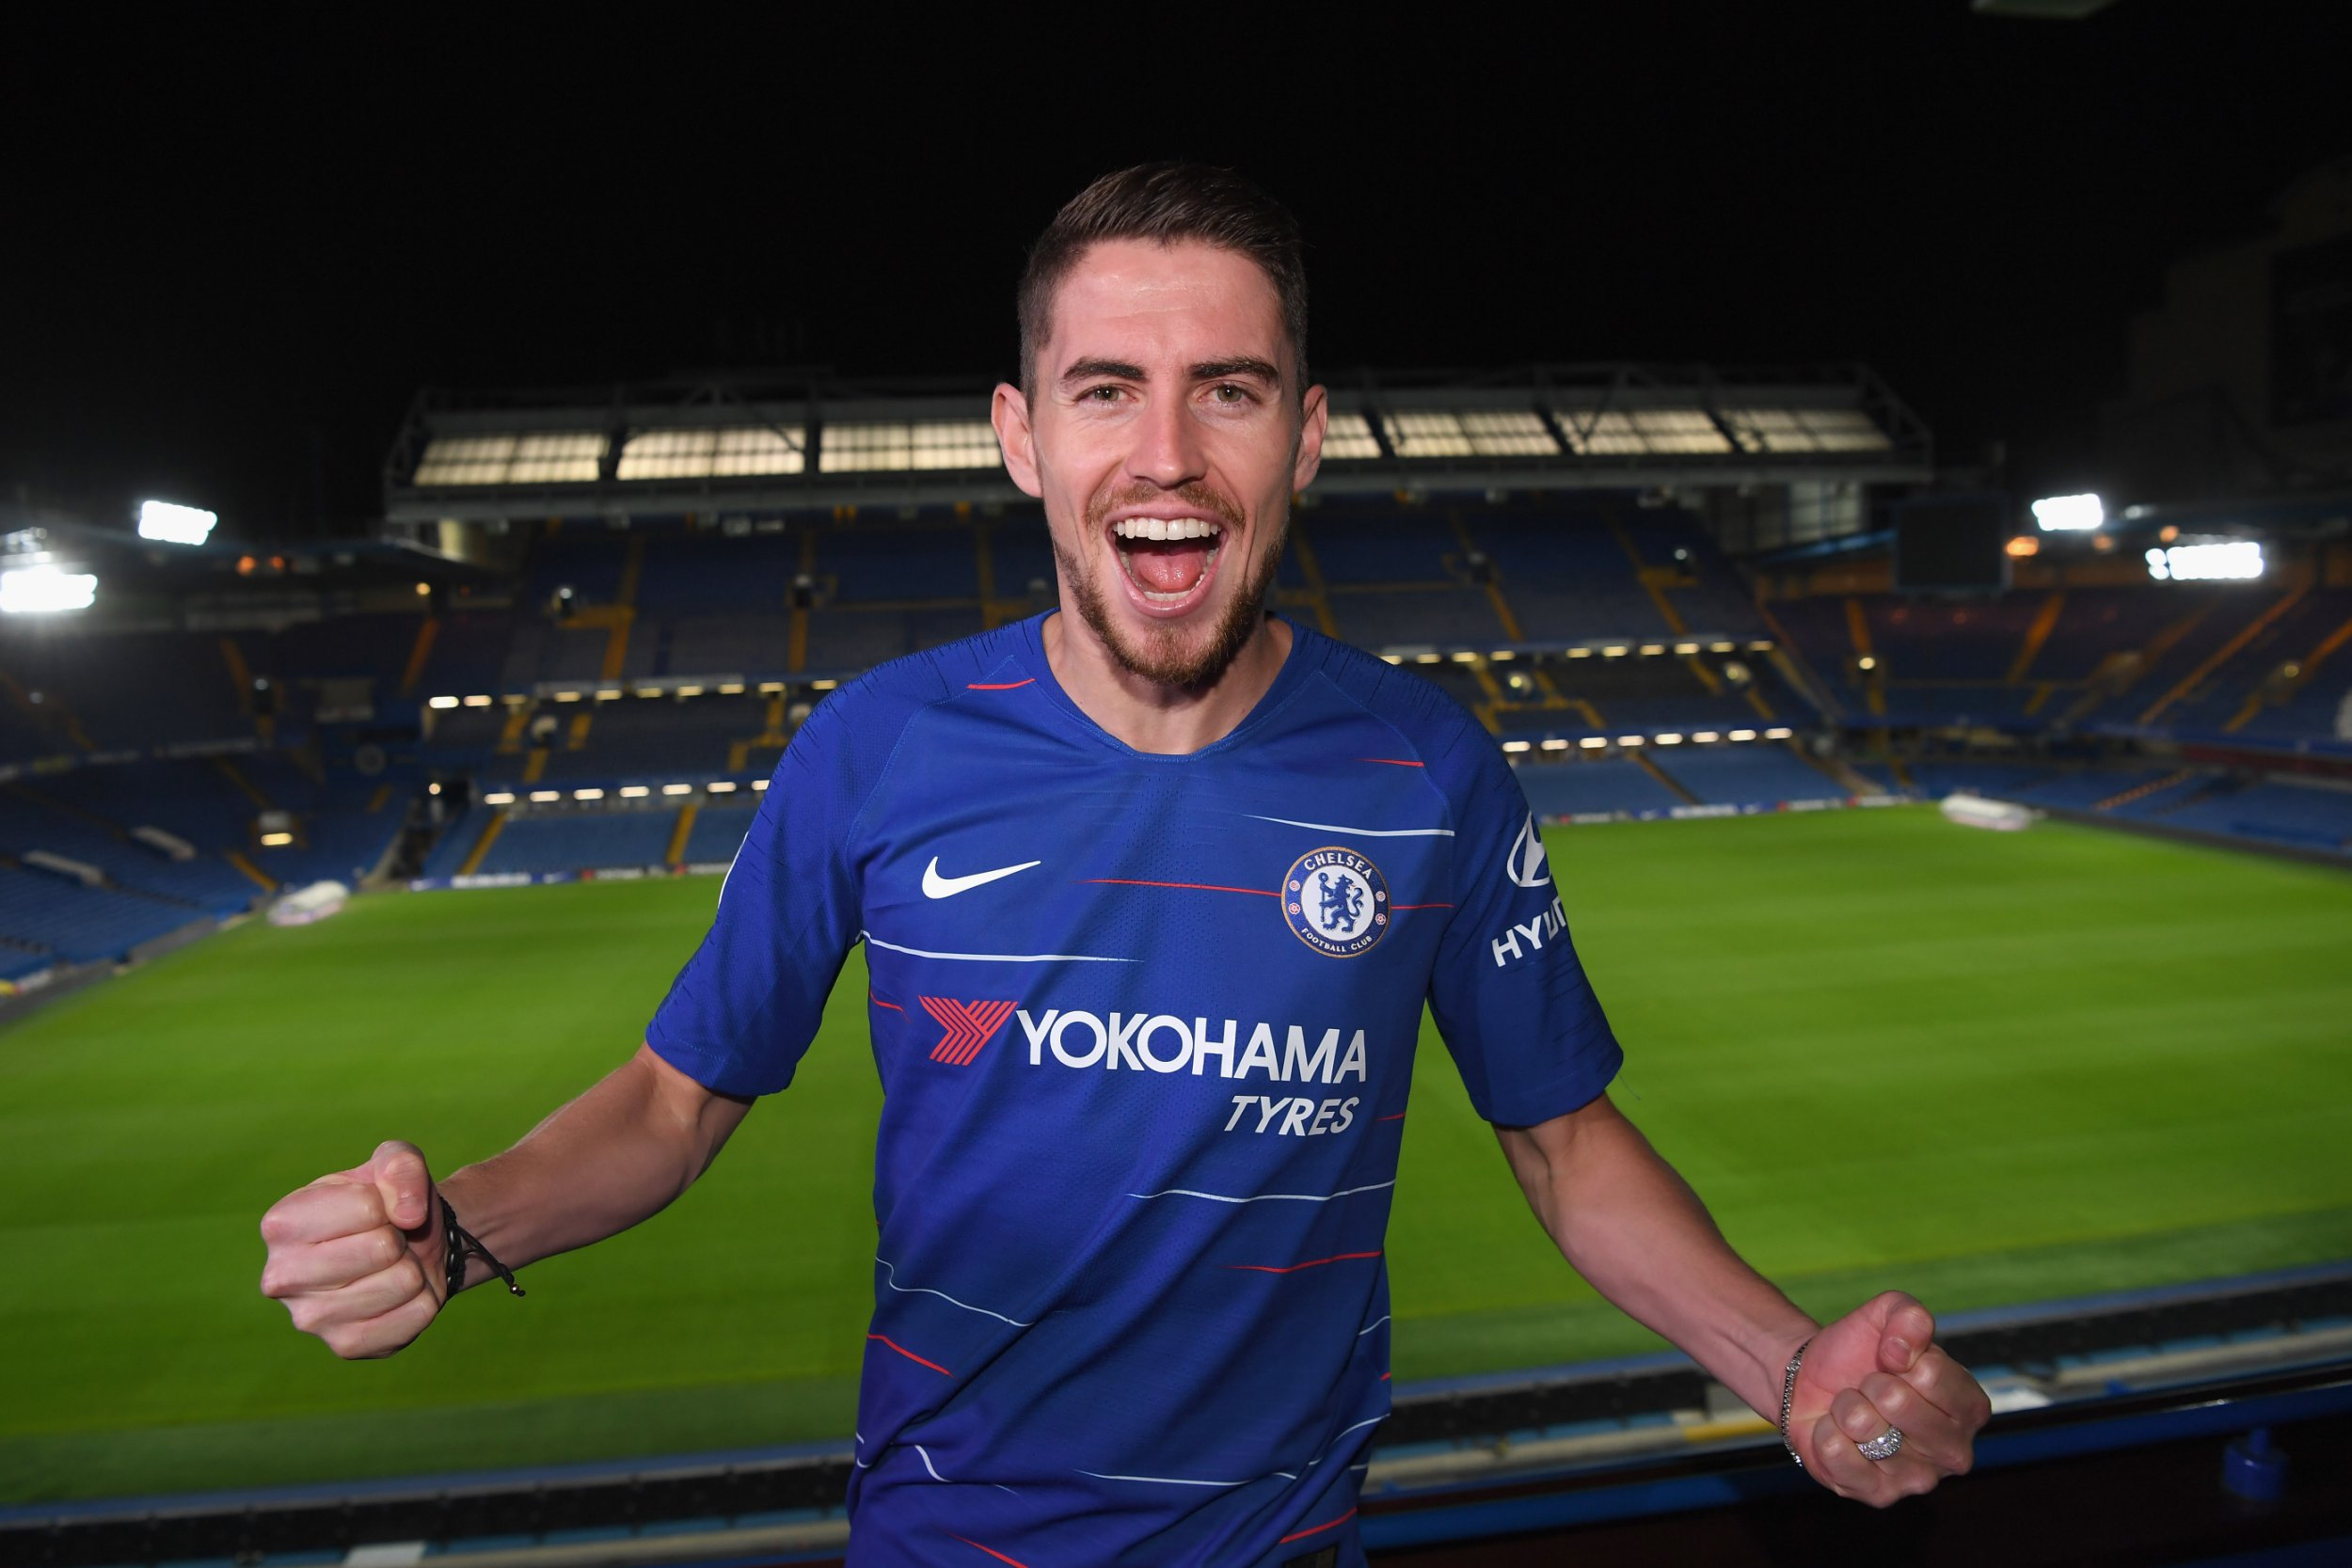 Chelsea fc latest signing